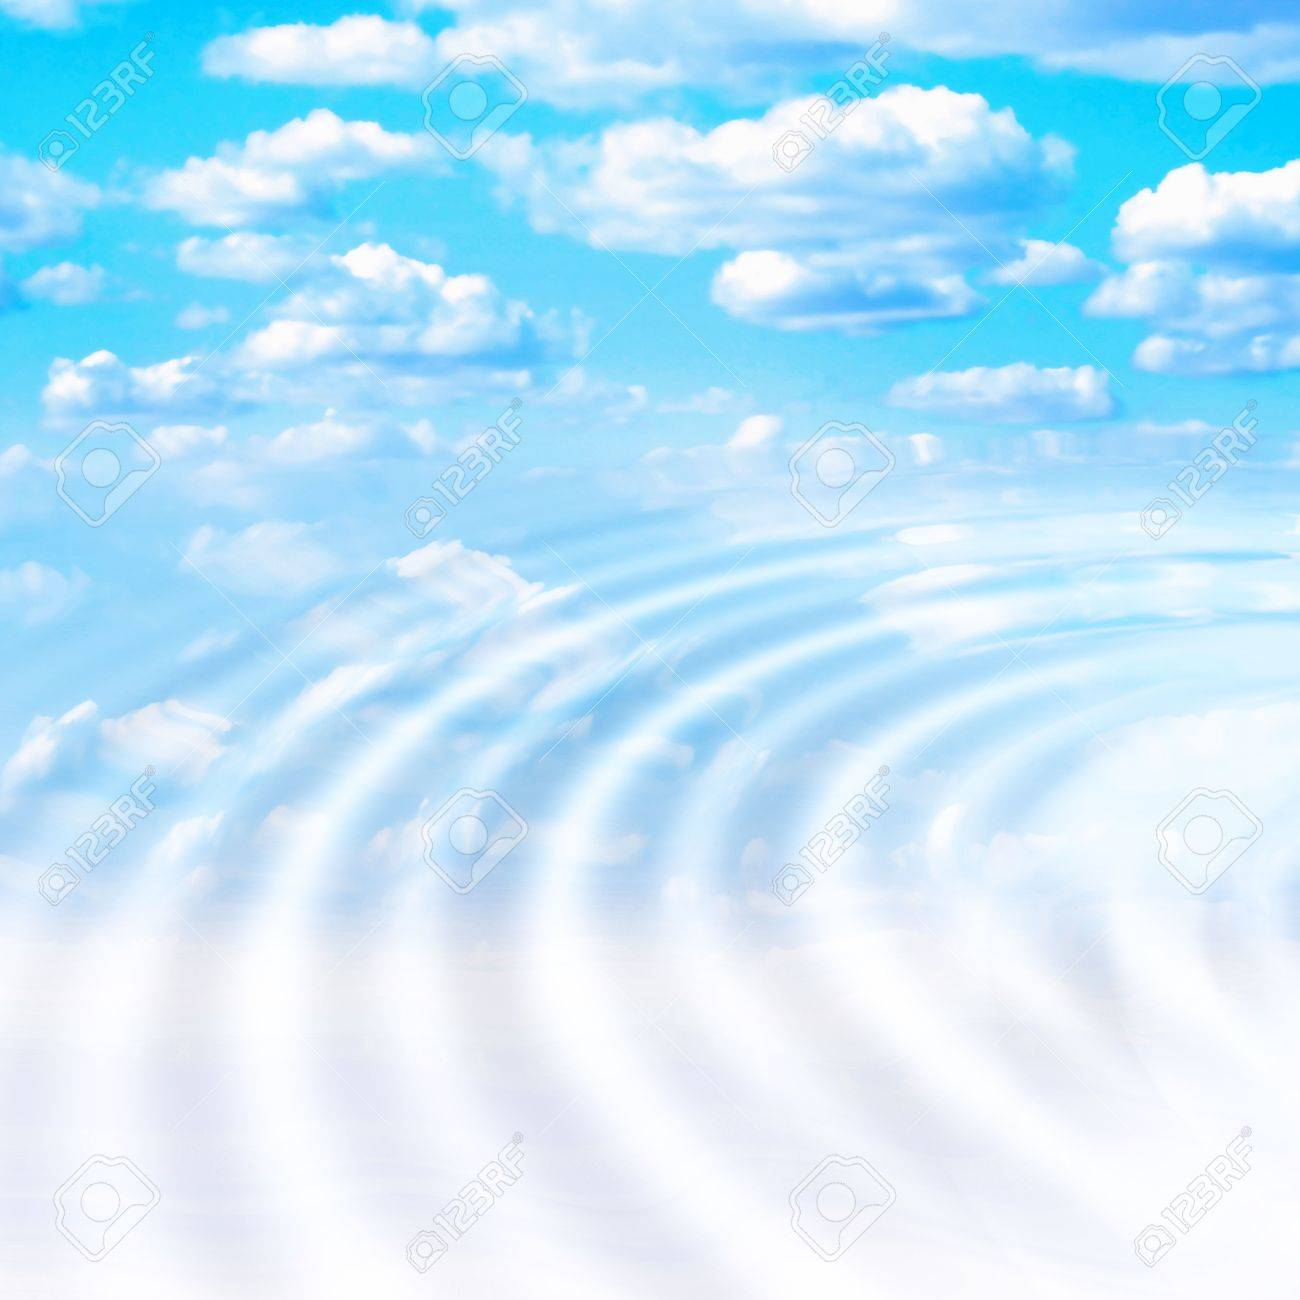 abstract reflection blue sky in water surface Stock Photo - 4516326